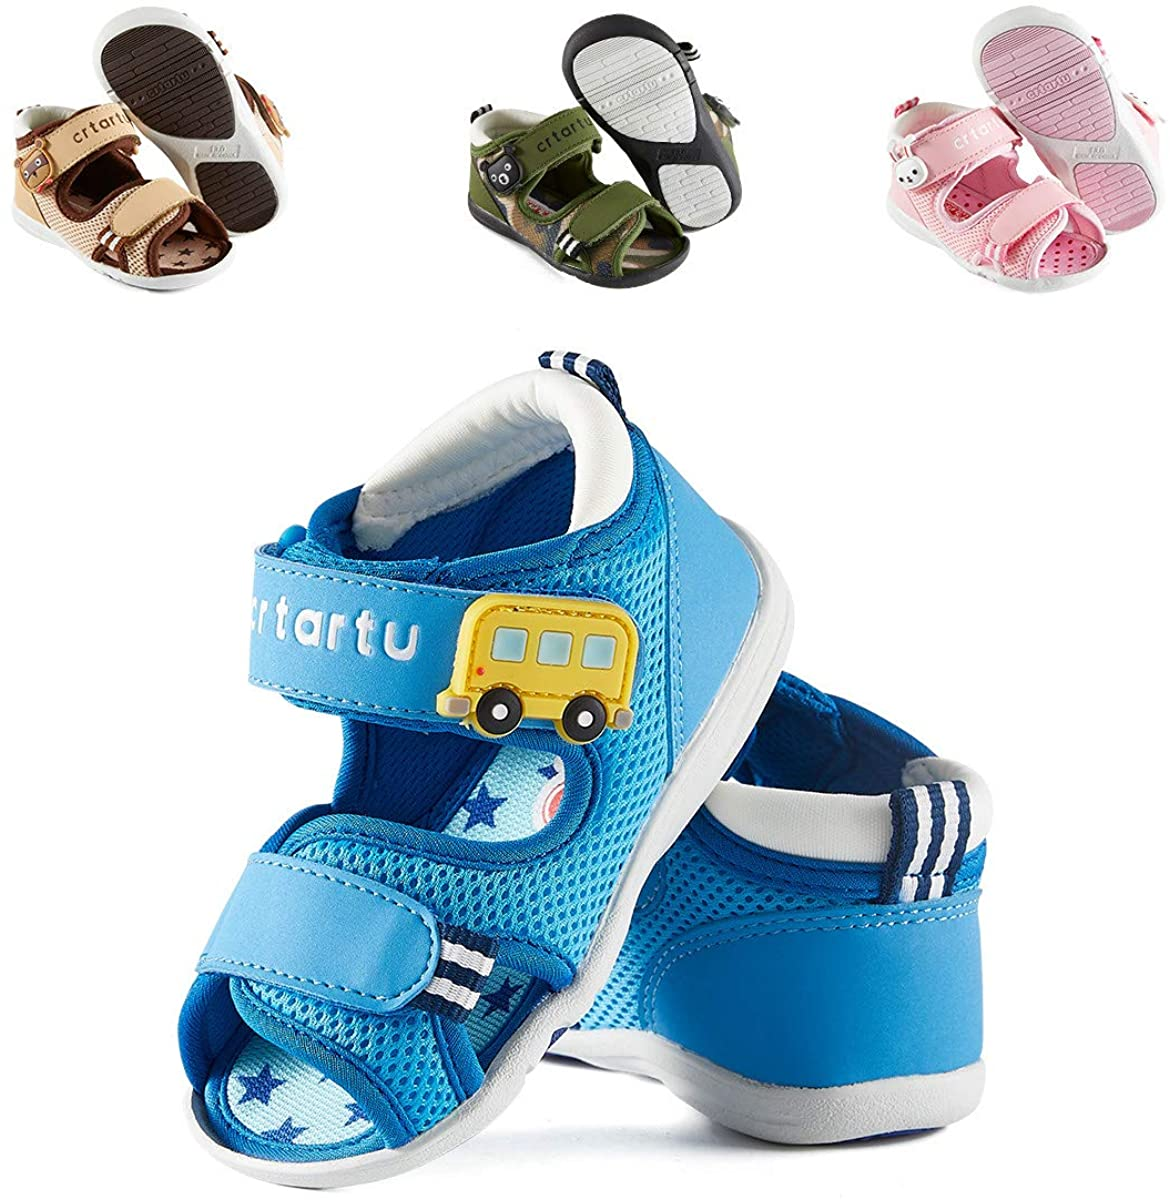 CRTARTU Baby Sandals Baby Sneakers Toddler Water Shoes Baby Footwear for Summer Baby Walking Shoes Anti-Slip Shoes Rubber Running Shoes